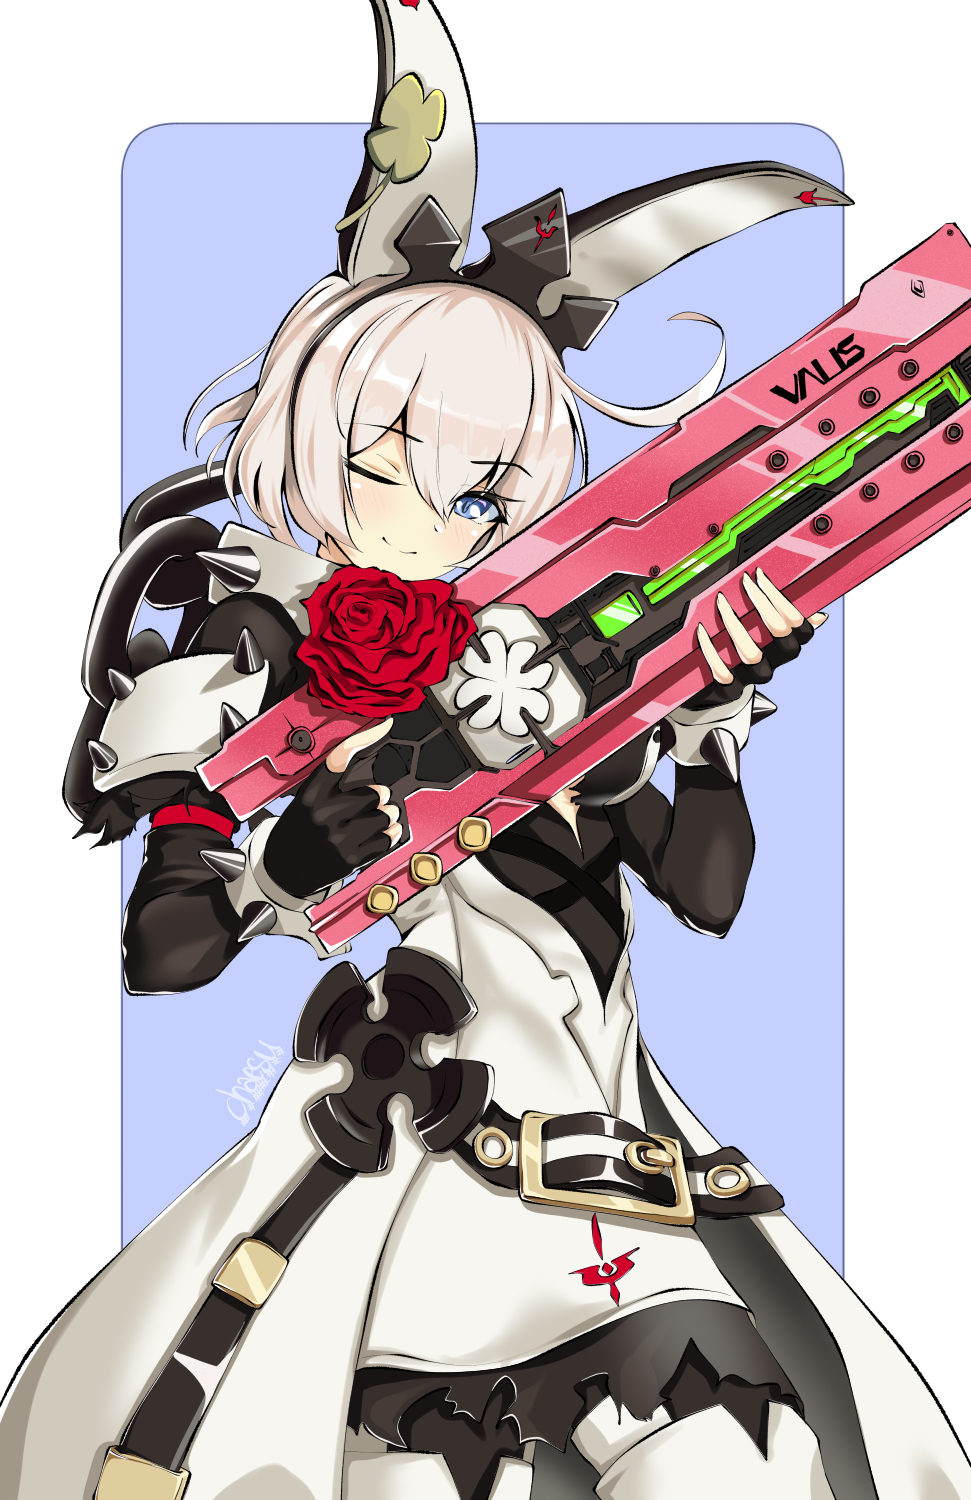 1girl ;) ahoge alternate_color alternate_hair_color blue_eyes blush breasts chaesu clover collar dress elphelt_valentine fingerless_gloves flower four-leaf_clover gloves guilty_gear guilty_gear_xrd gun hairband highres huge_ahoge long_dress looking_at_viewer one_eye_closed red_flower red_rose rose shotgun silver_hair smile solo spiked_collar spiked_hairband spikes spoilers trigger_discipline weapon